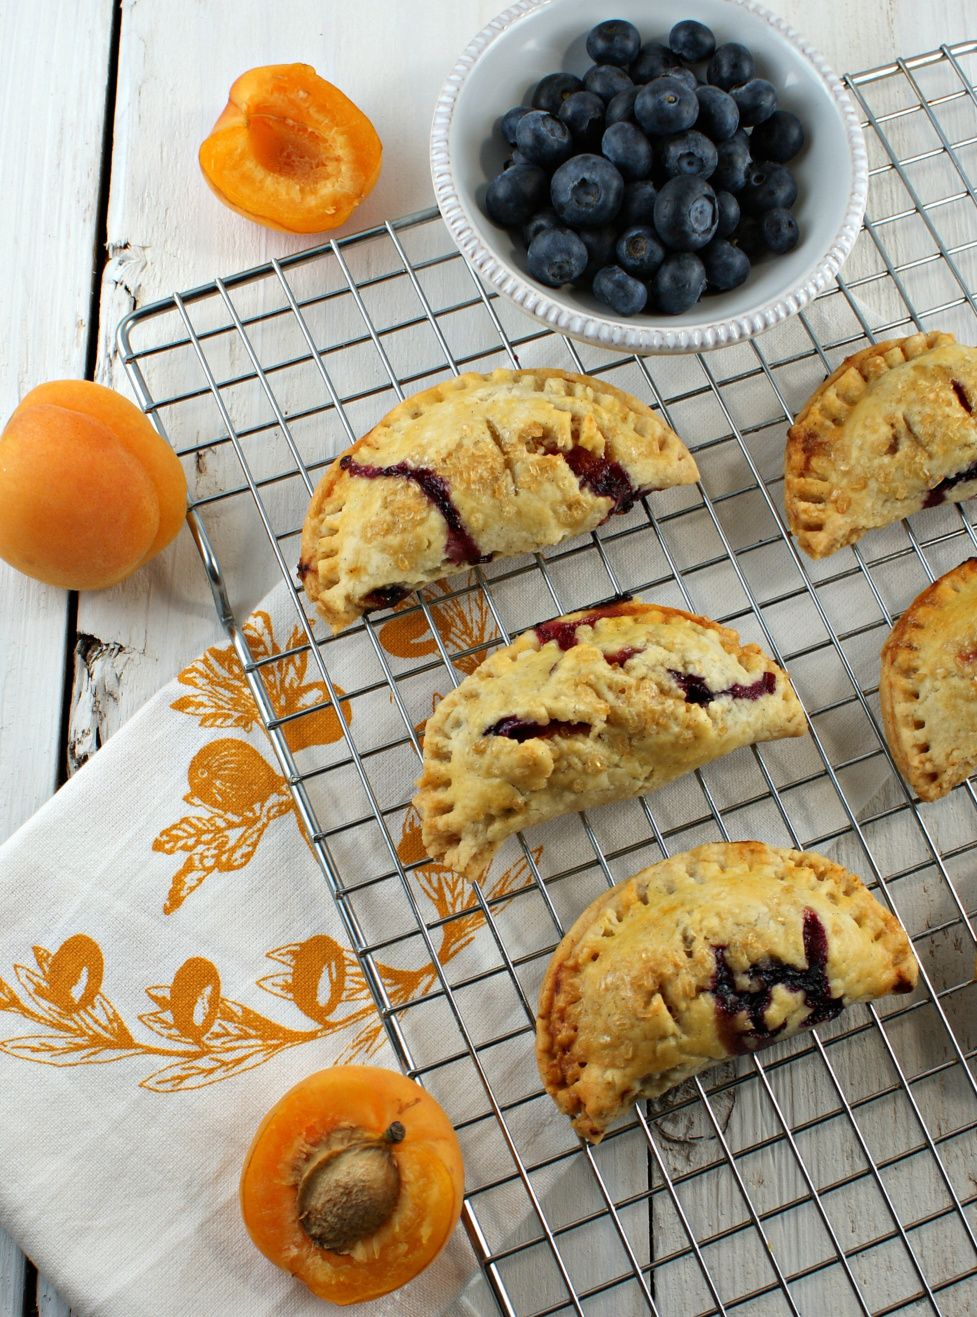 Apricot, Blueberry and Cardamom Hand Pies @Lisa |Authentic Suburban Gourmet